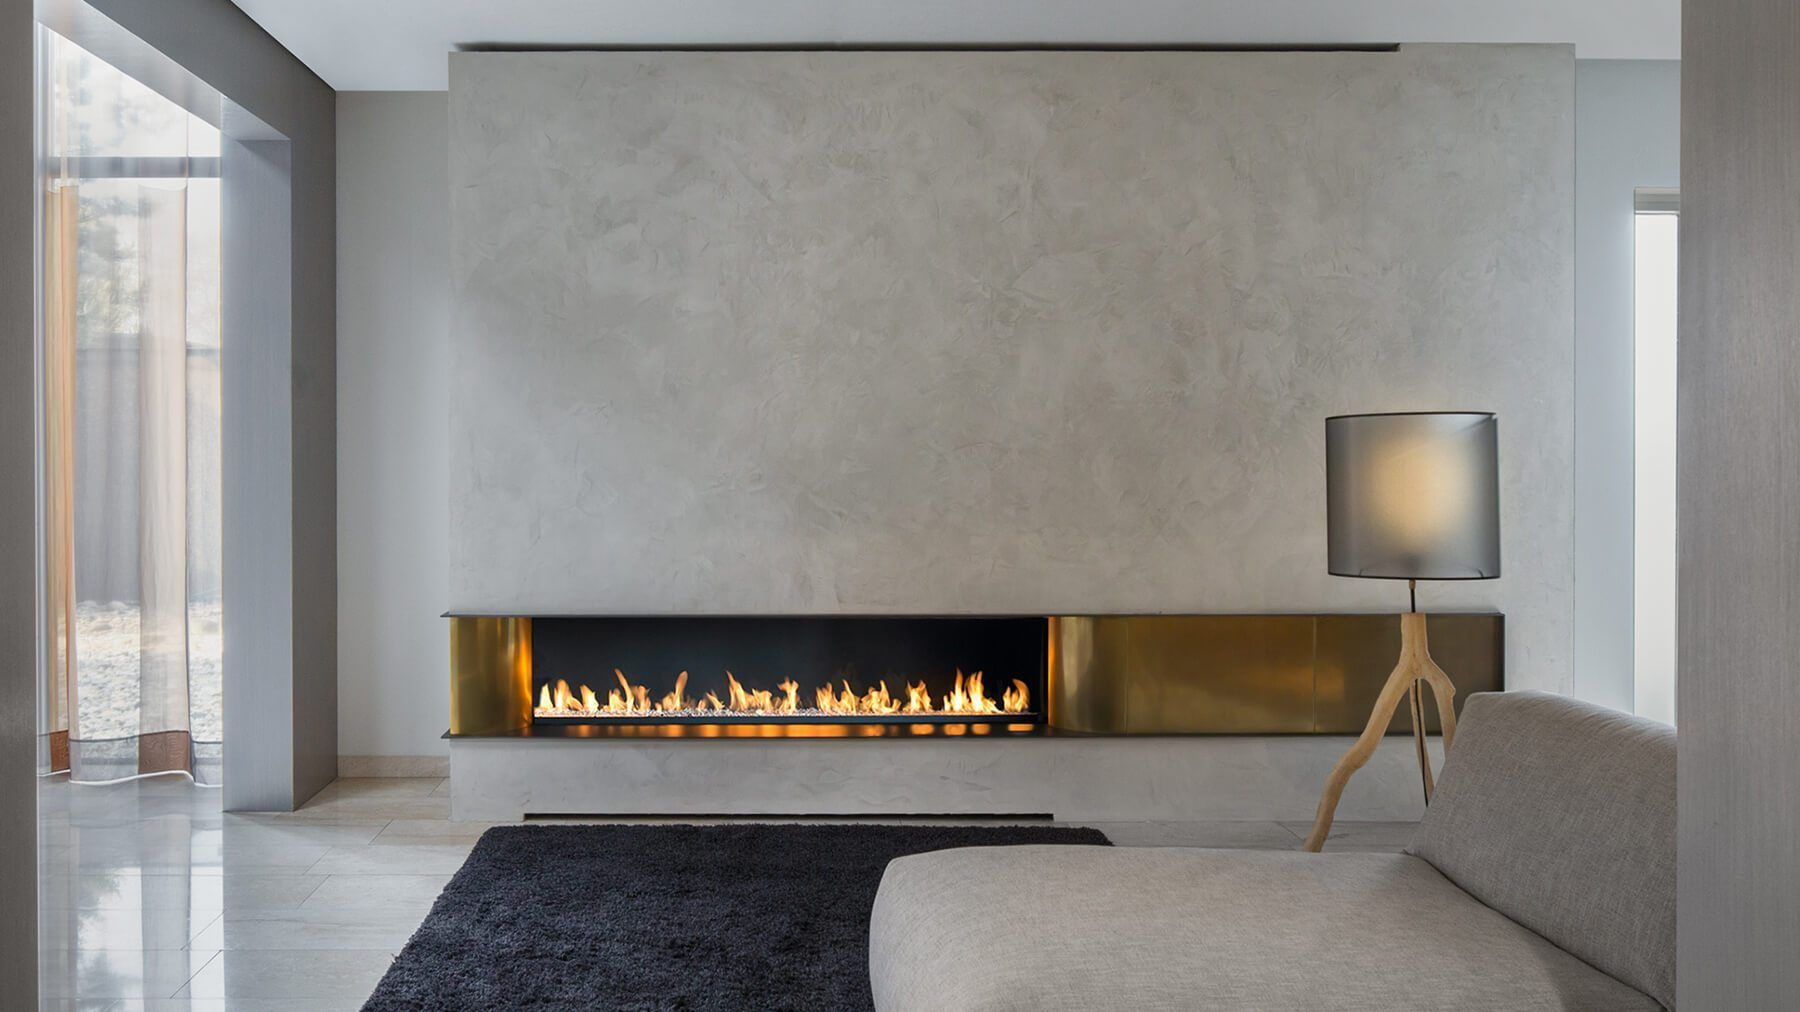 32 modern fireplace designs that will spoil your eyes current style rh pinterest com